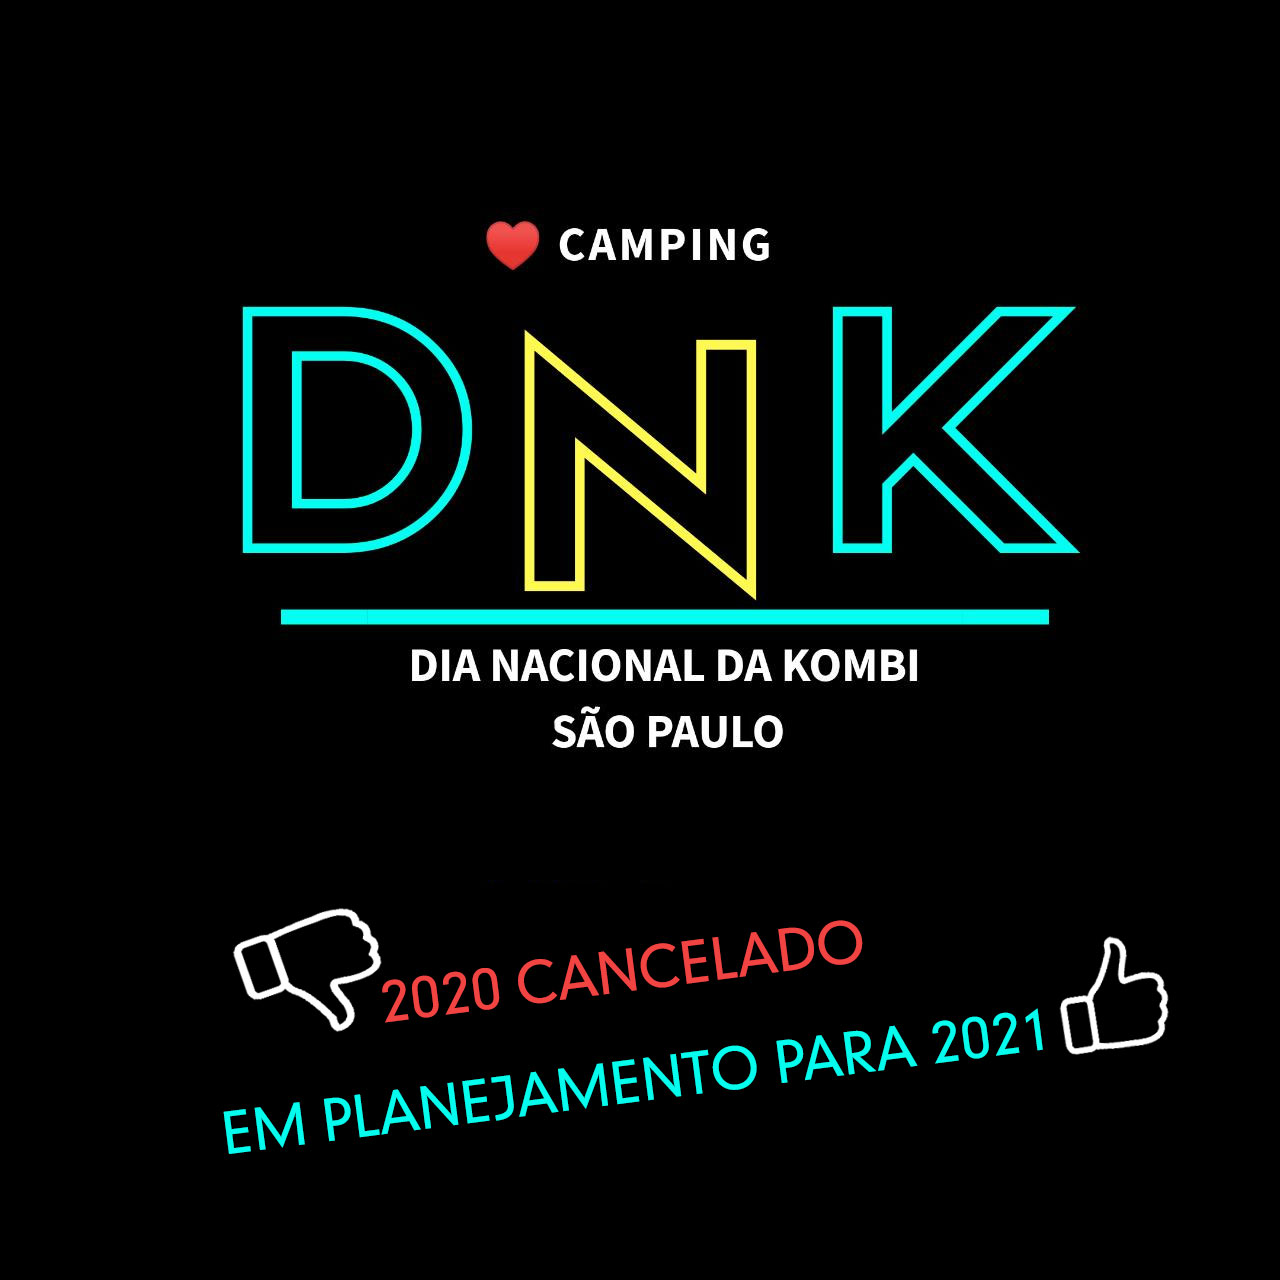 banner-dnk-camping